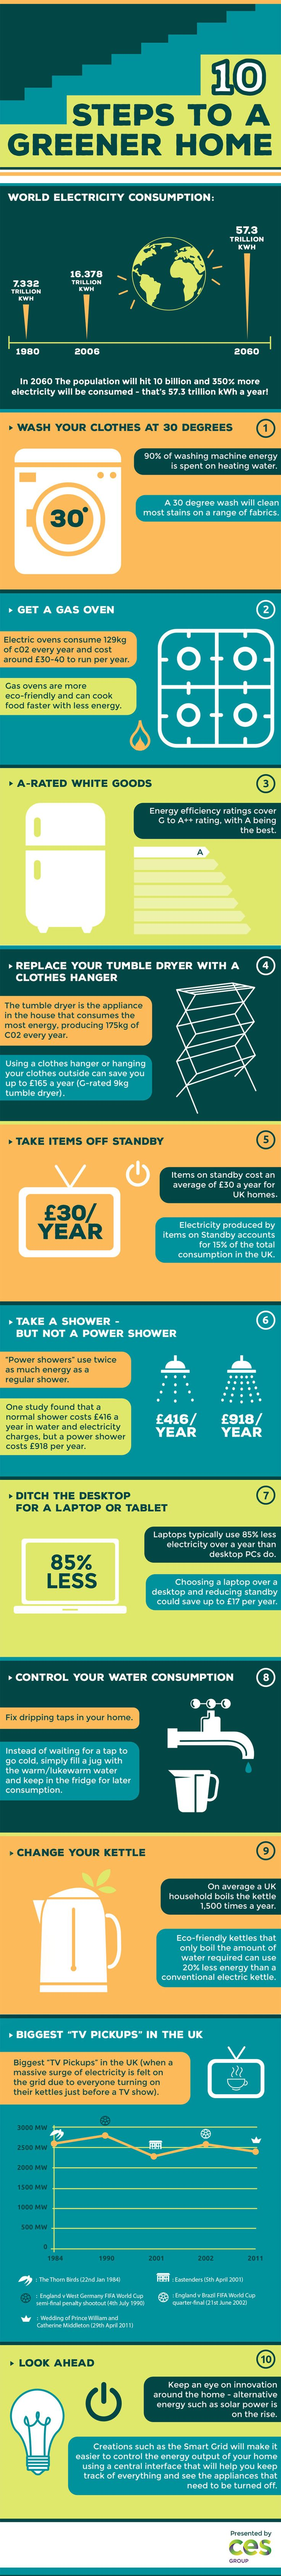 INFOGRAPHIC: 10 ways to make your home more green